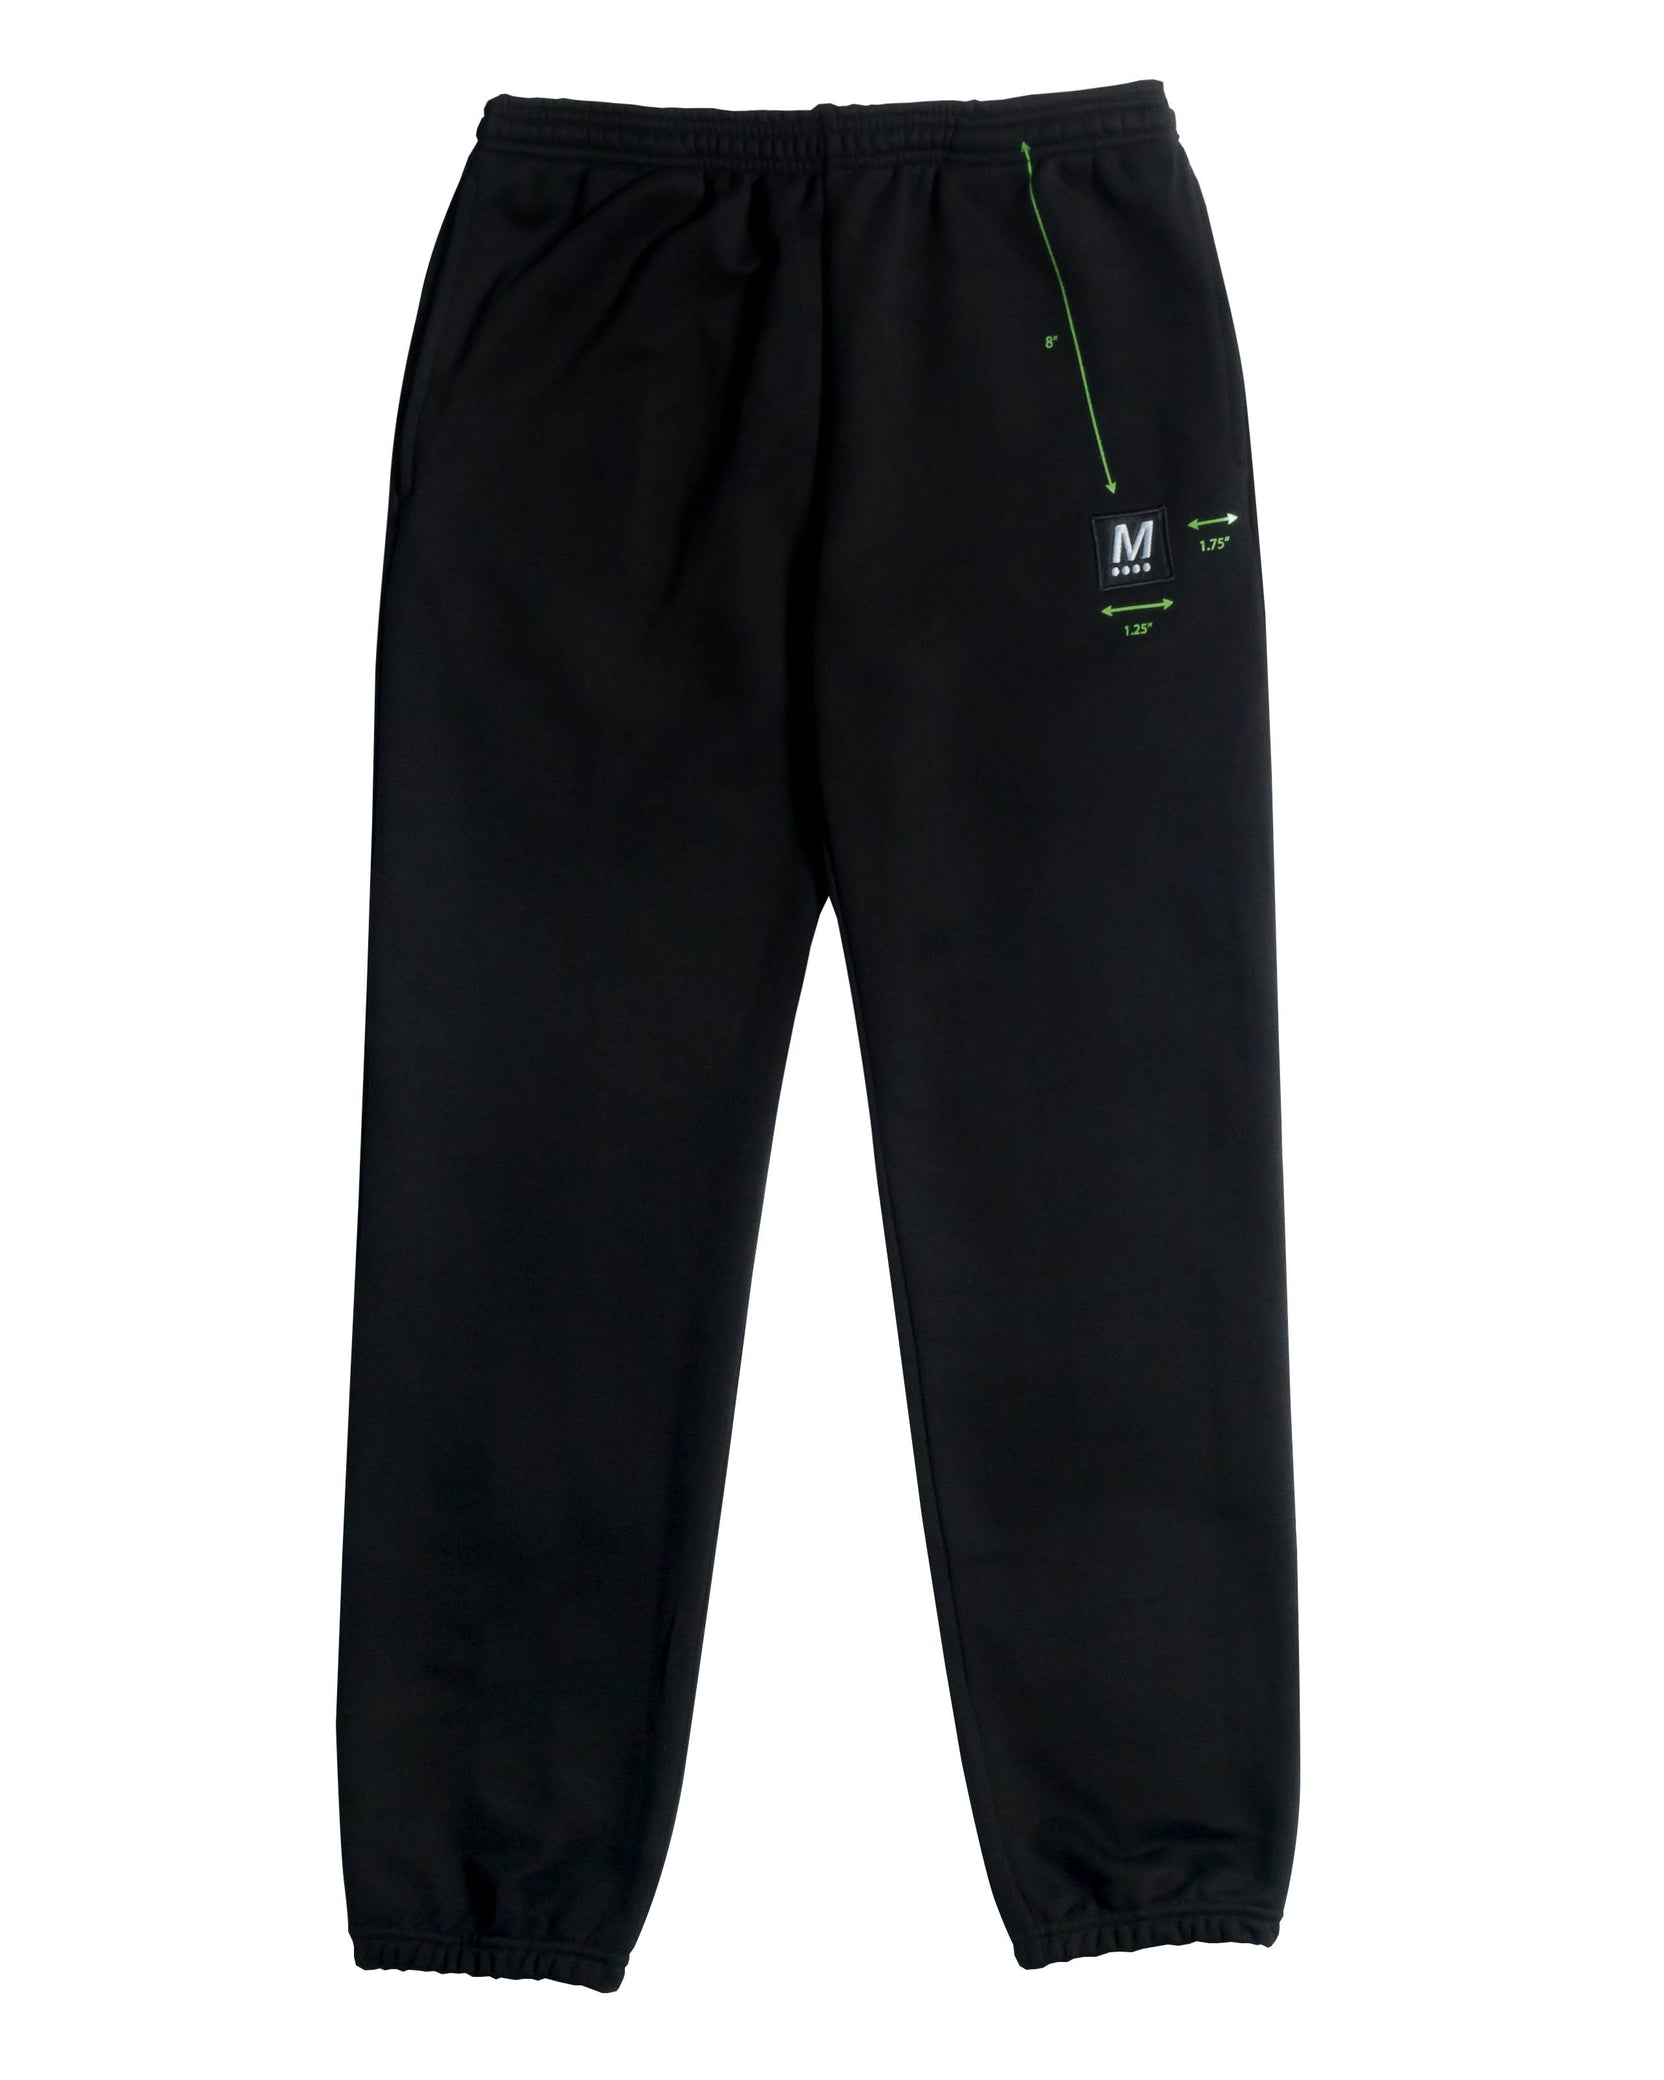 DIAGRAM SWEATPANT - BLACK / GREEN